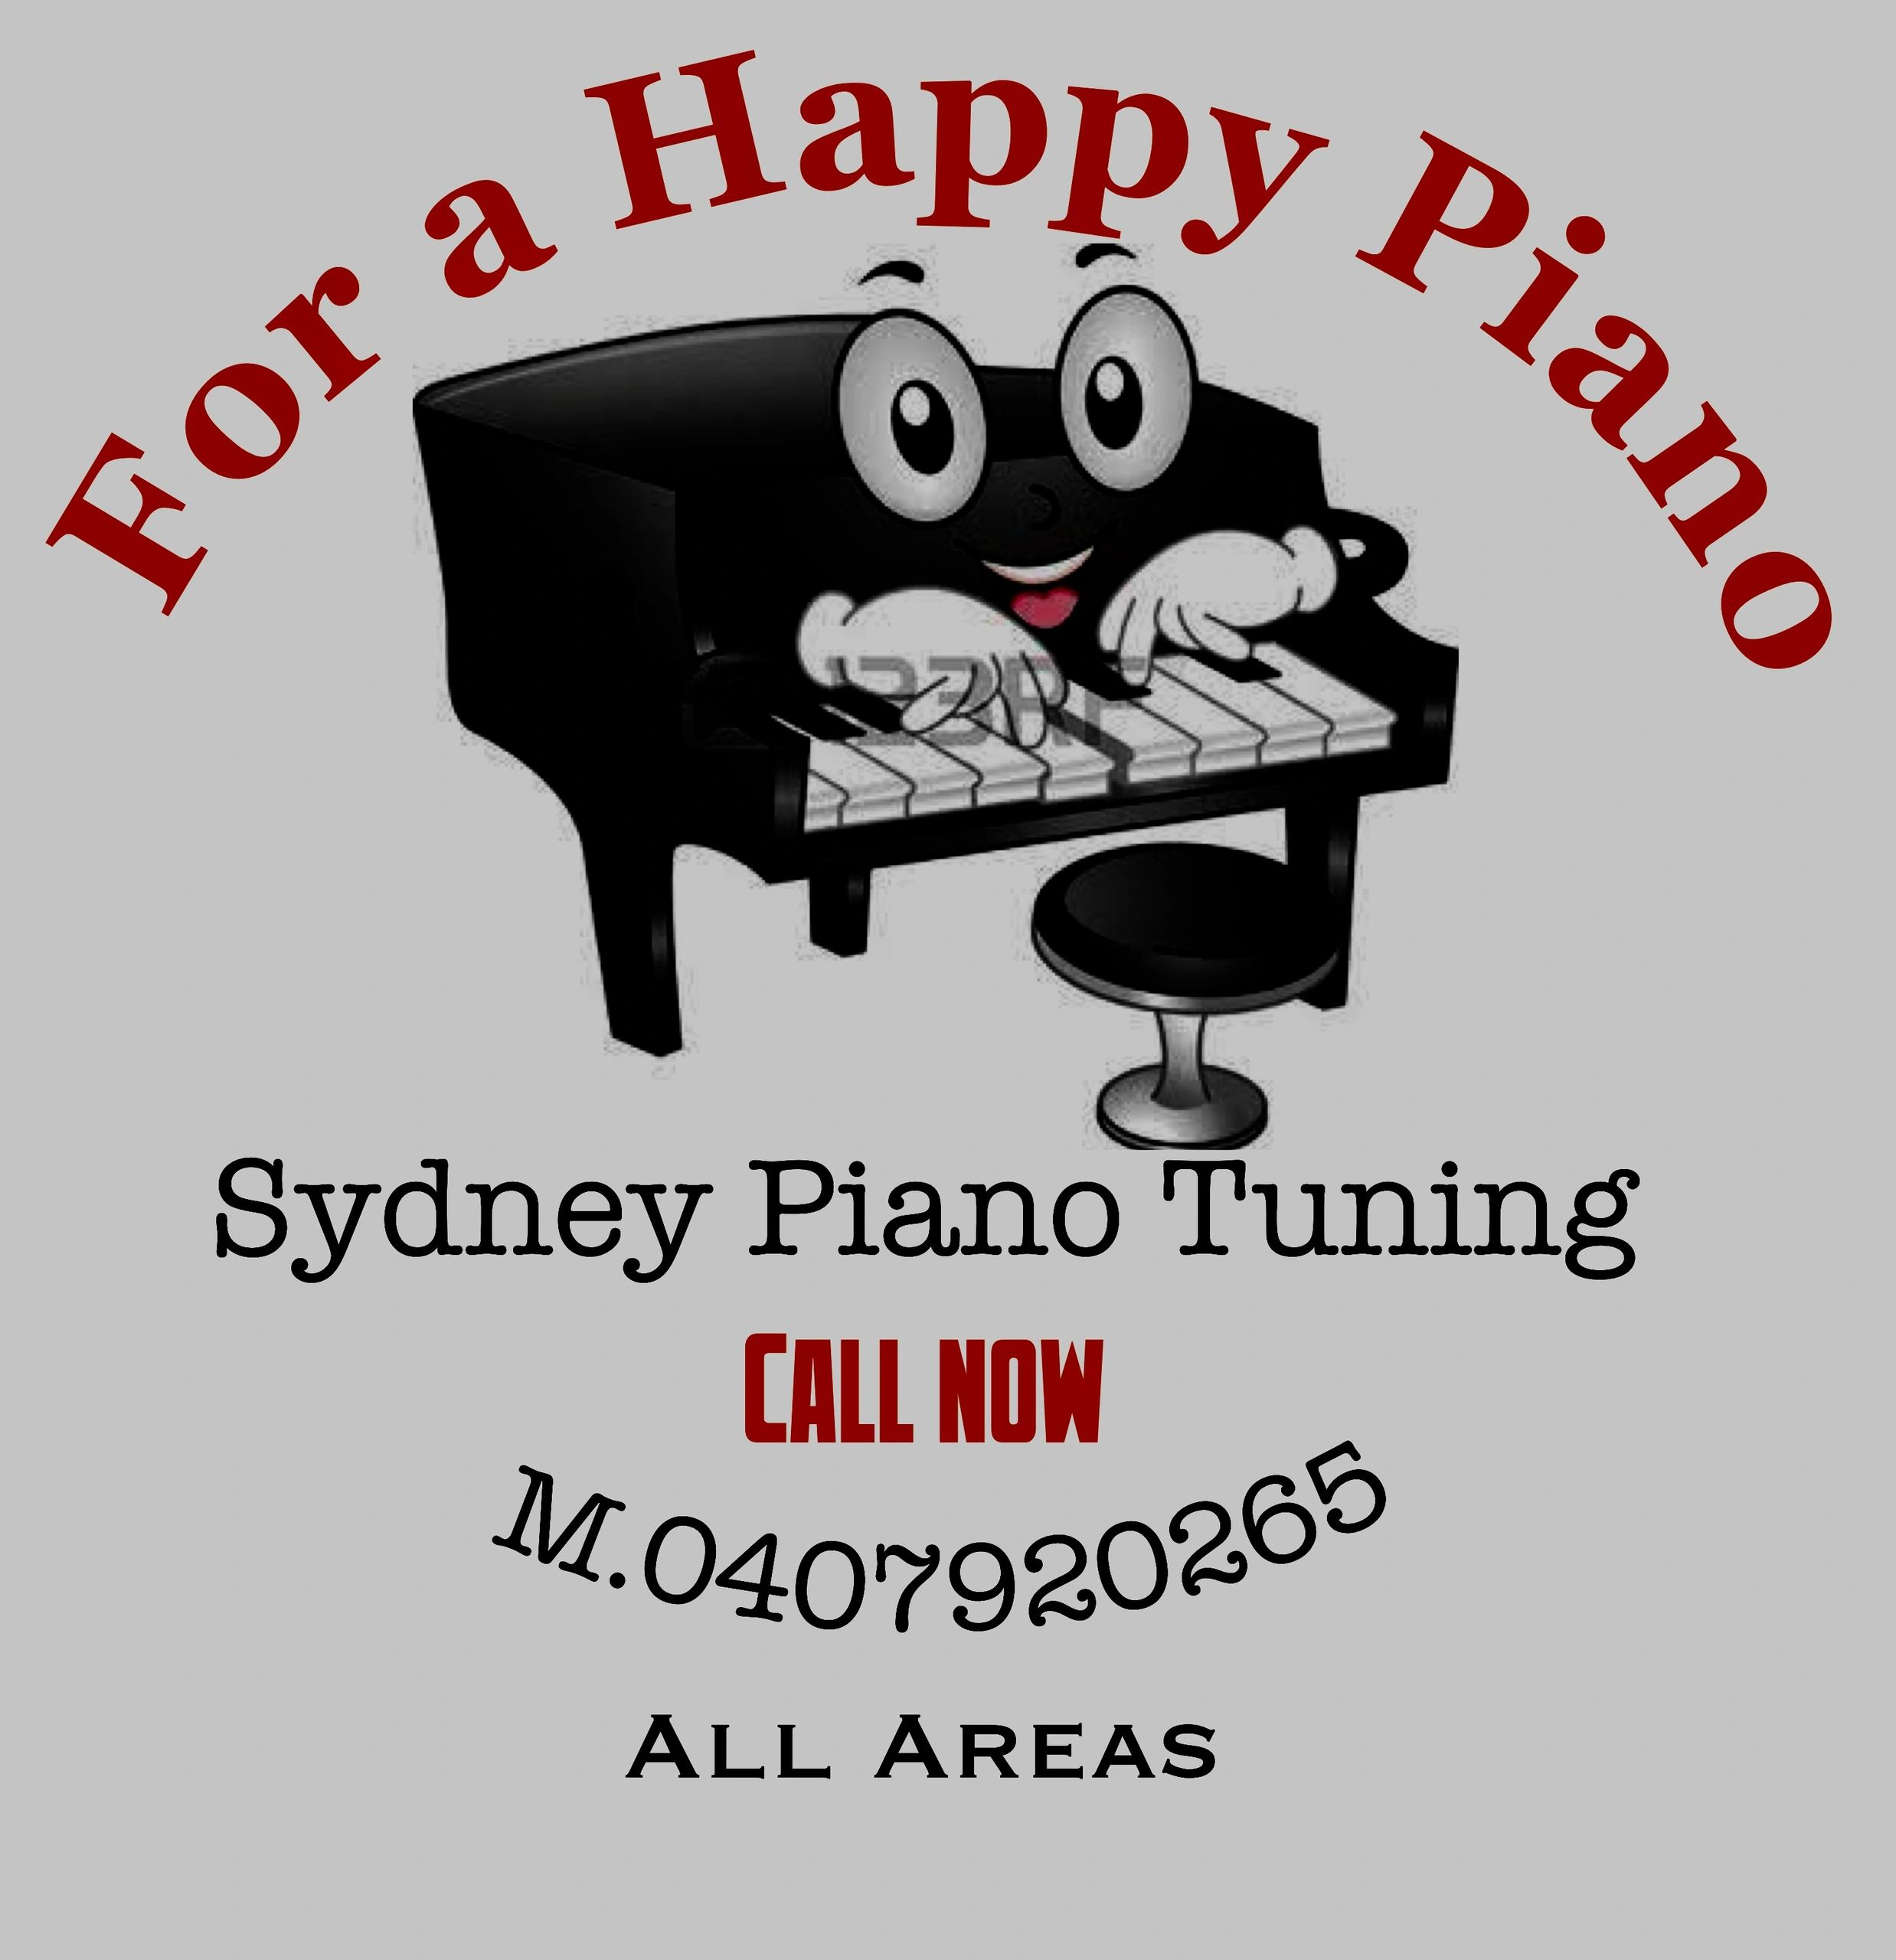 Its a picture of a piano playing its keyboard with its own hand it has big eyes with a happy smile